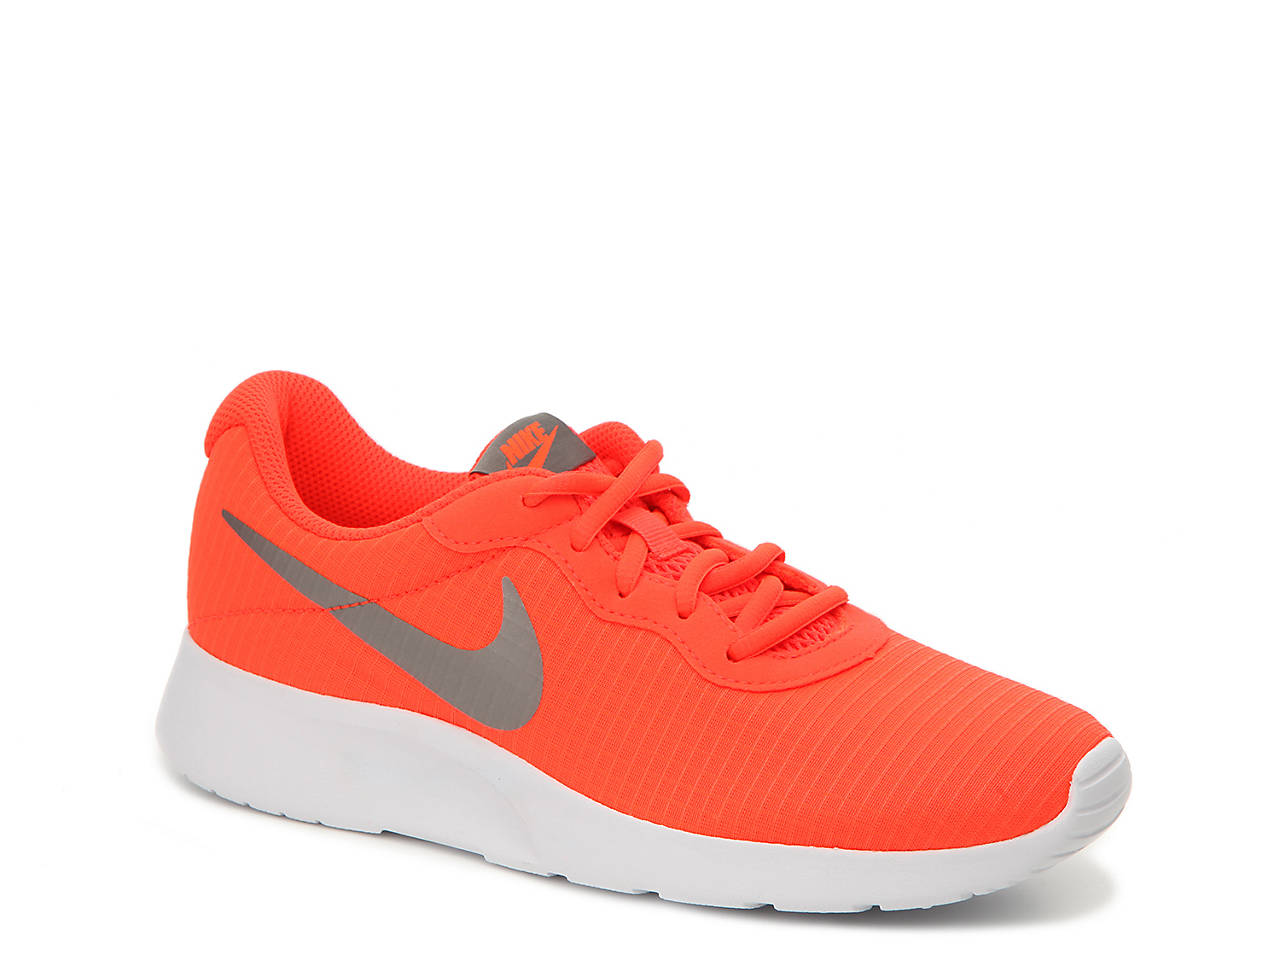 Utk Nike Shoes